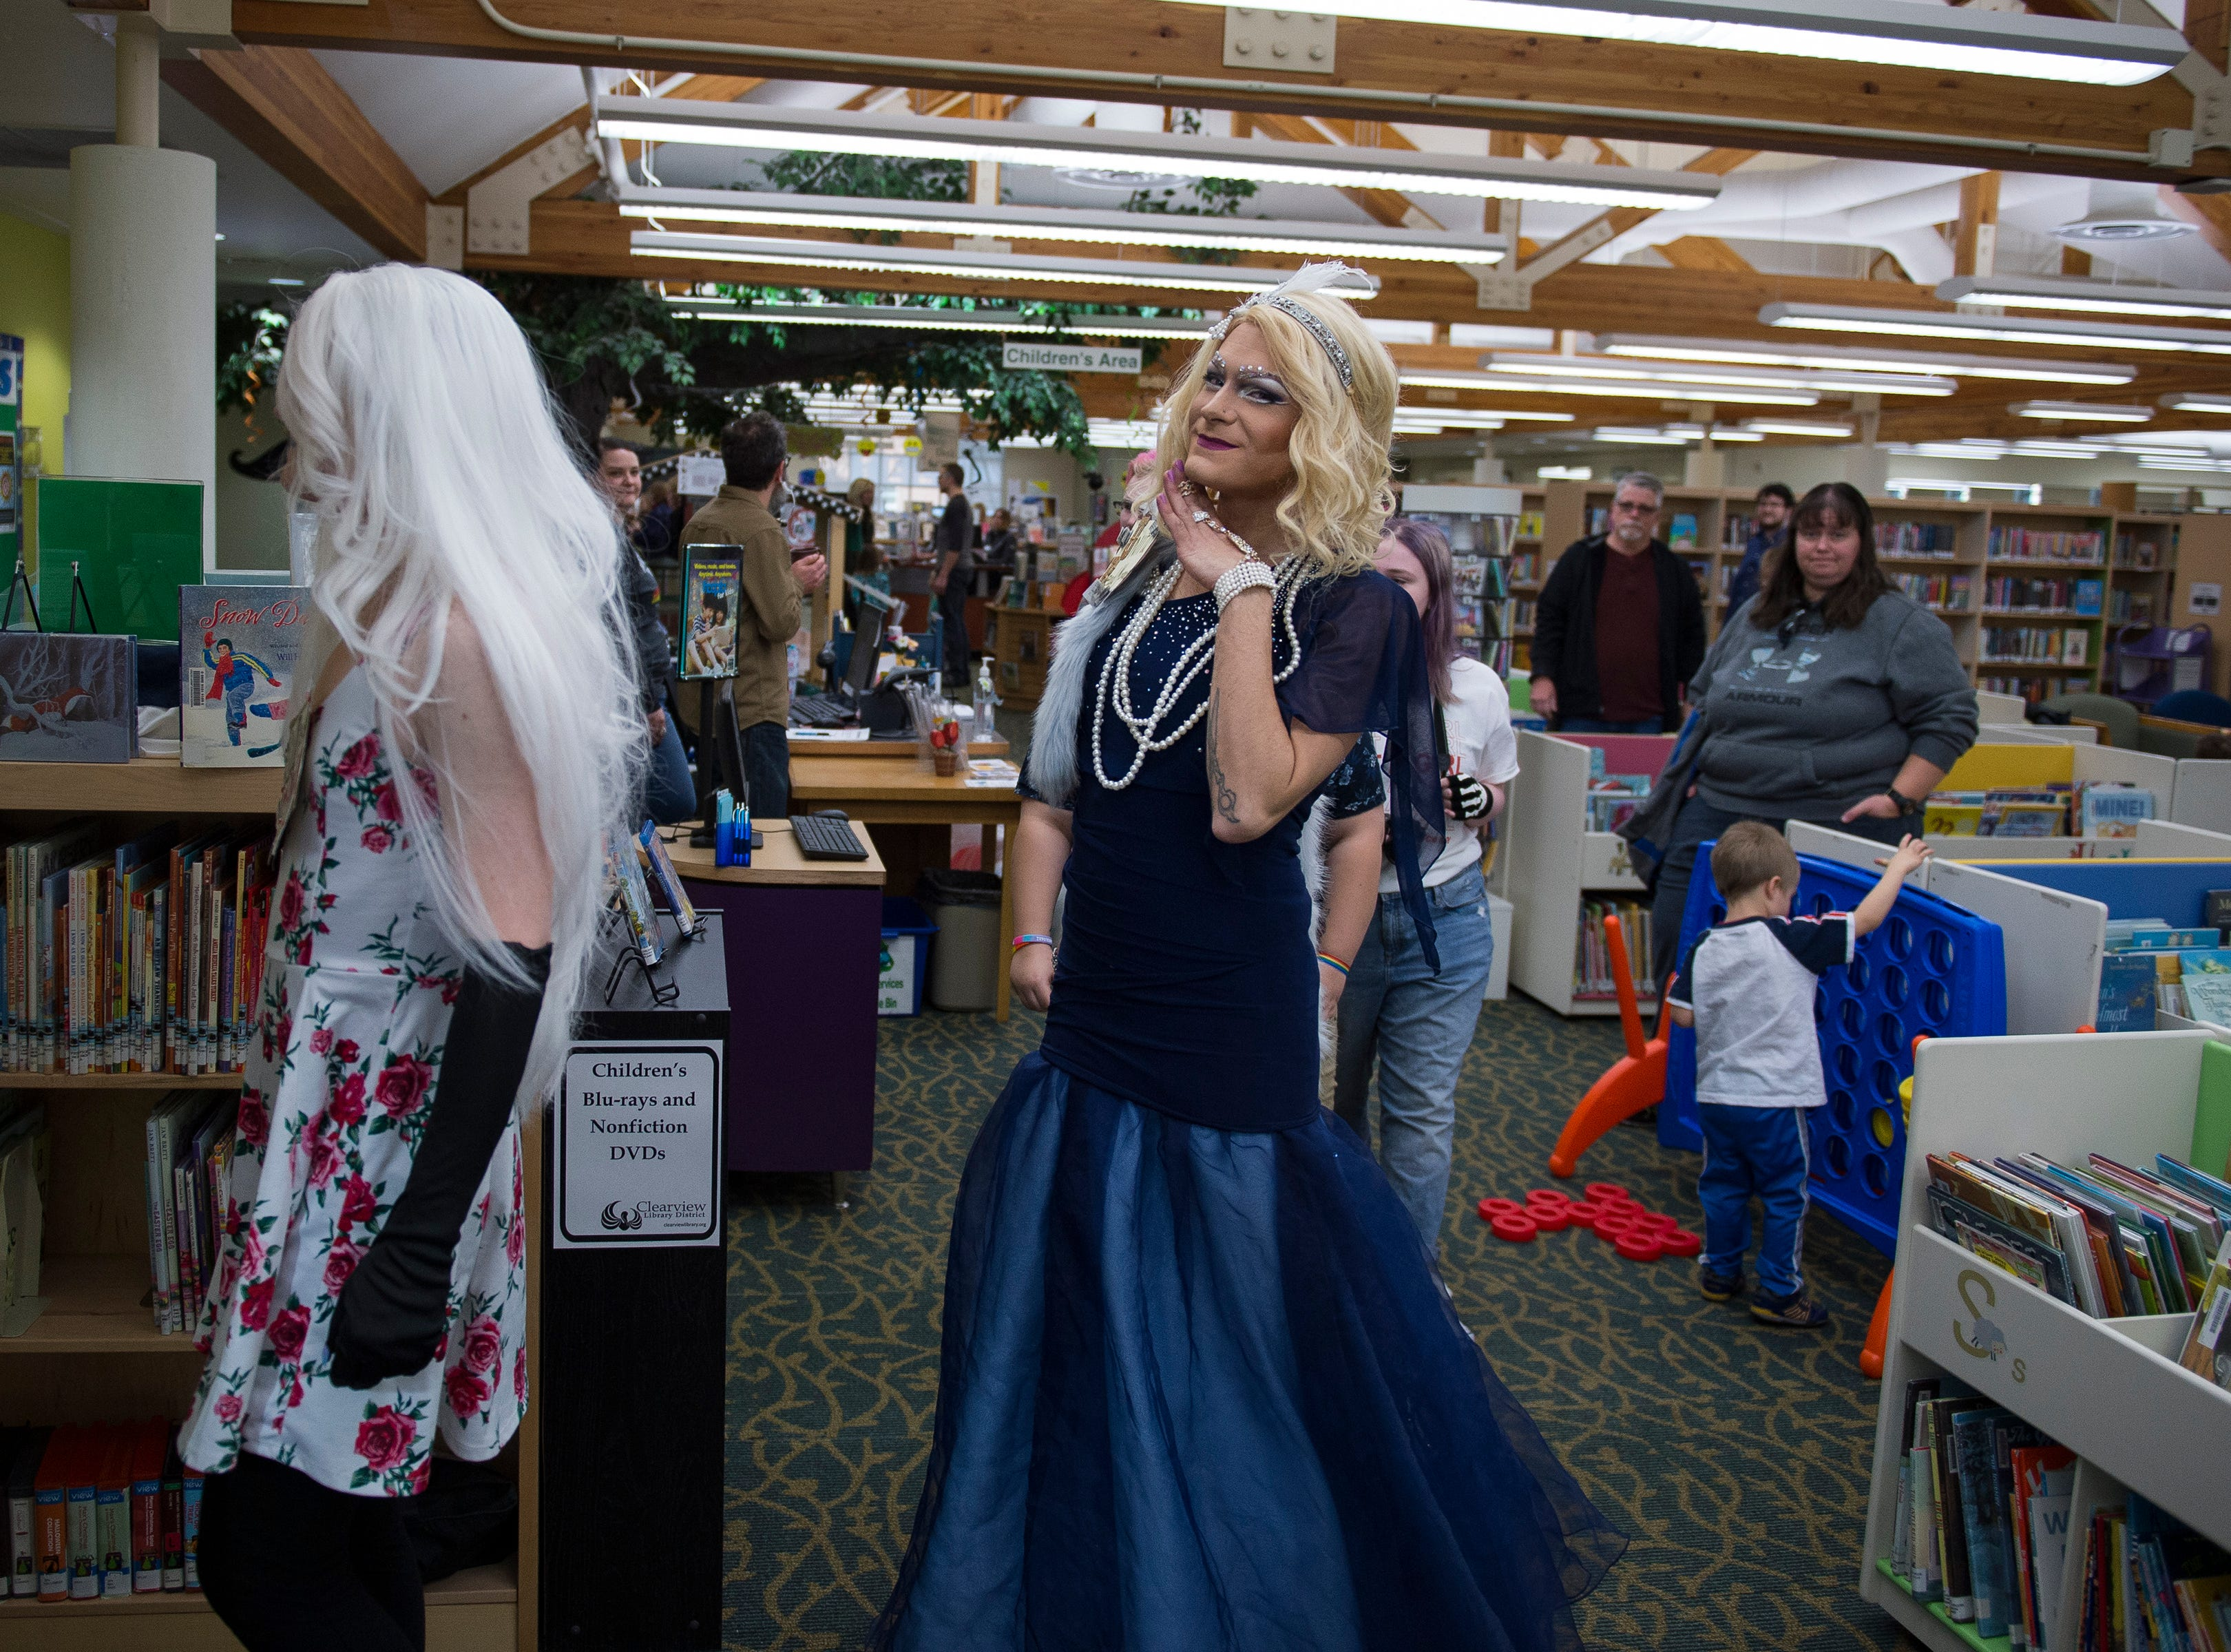 Drag queen Unita ReadMoore poses for the camera while she, Miss Mayyhem, left, and drag king Simon Hyperion head to the private room for Drag Queen Story Hour on Saturday, Jan. 12, 2019, at the Clearview Public Library in Windsor, Colo. Drag Queen Story Hour is a program put on by SPLASH, an LGBTQ+ youth outreach organization.